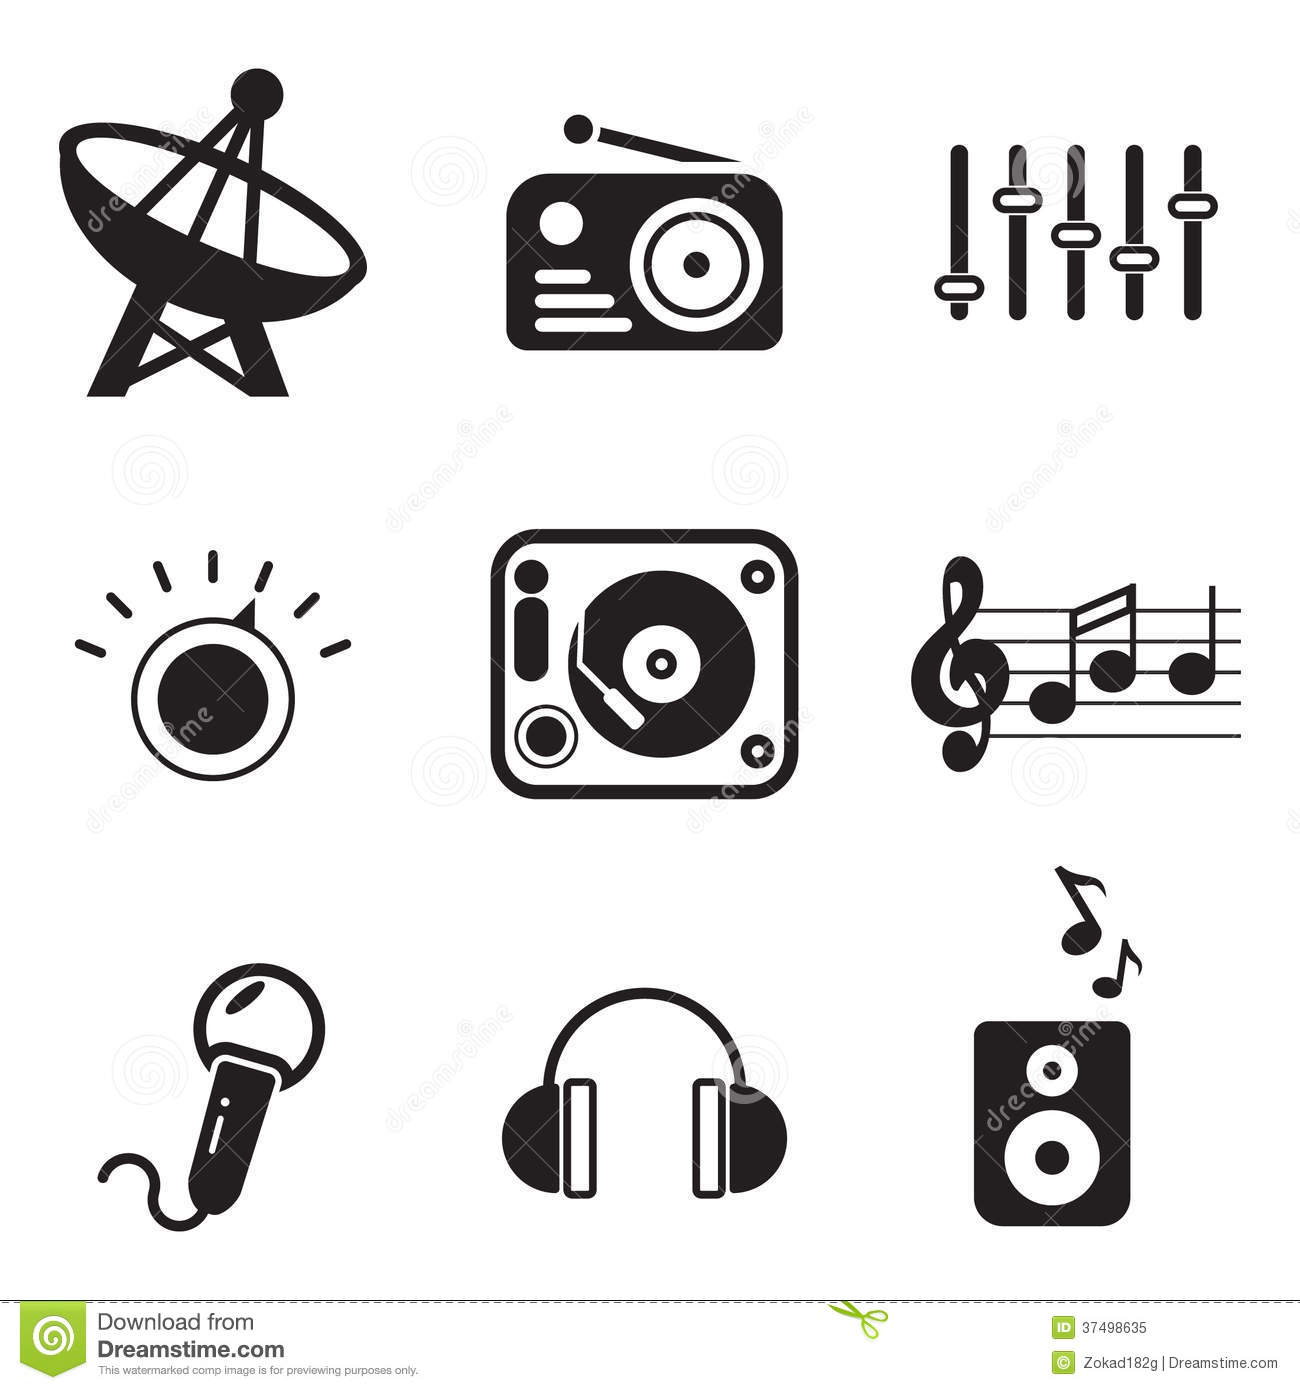 58406885 moreover Building Security Access Plans in addition Radio Station Antenna Clip Art moreover Philco Radio Schematics together with  on television wiring